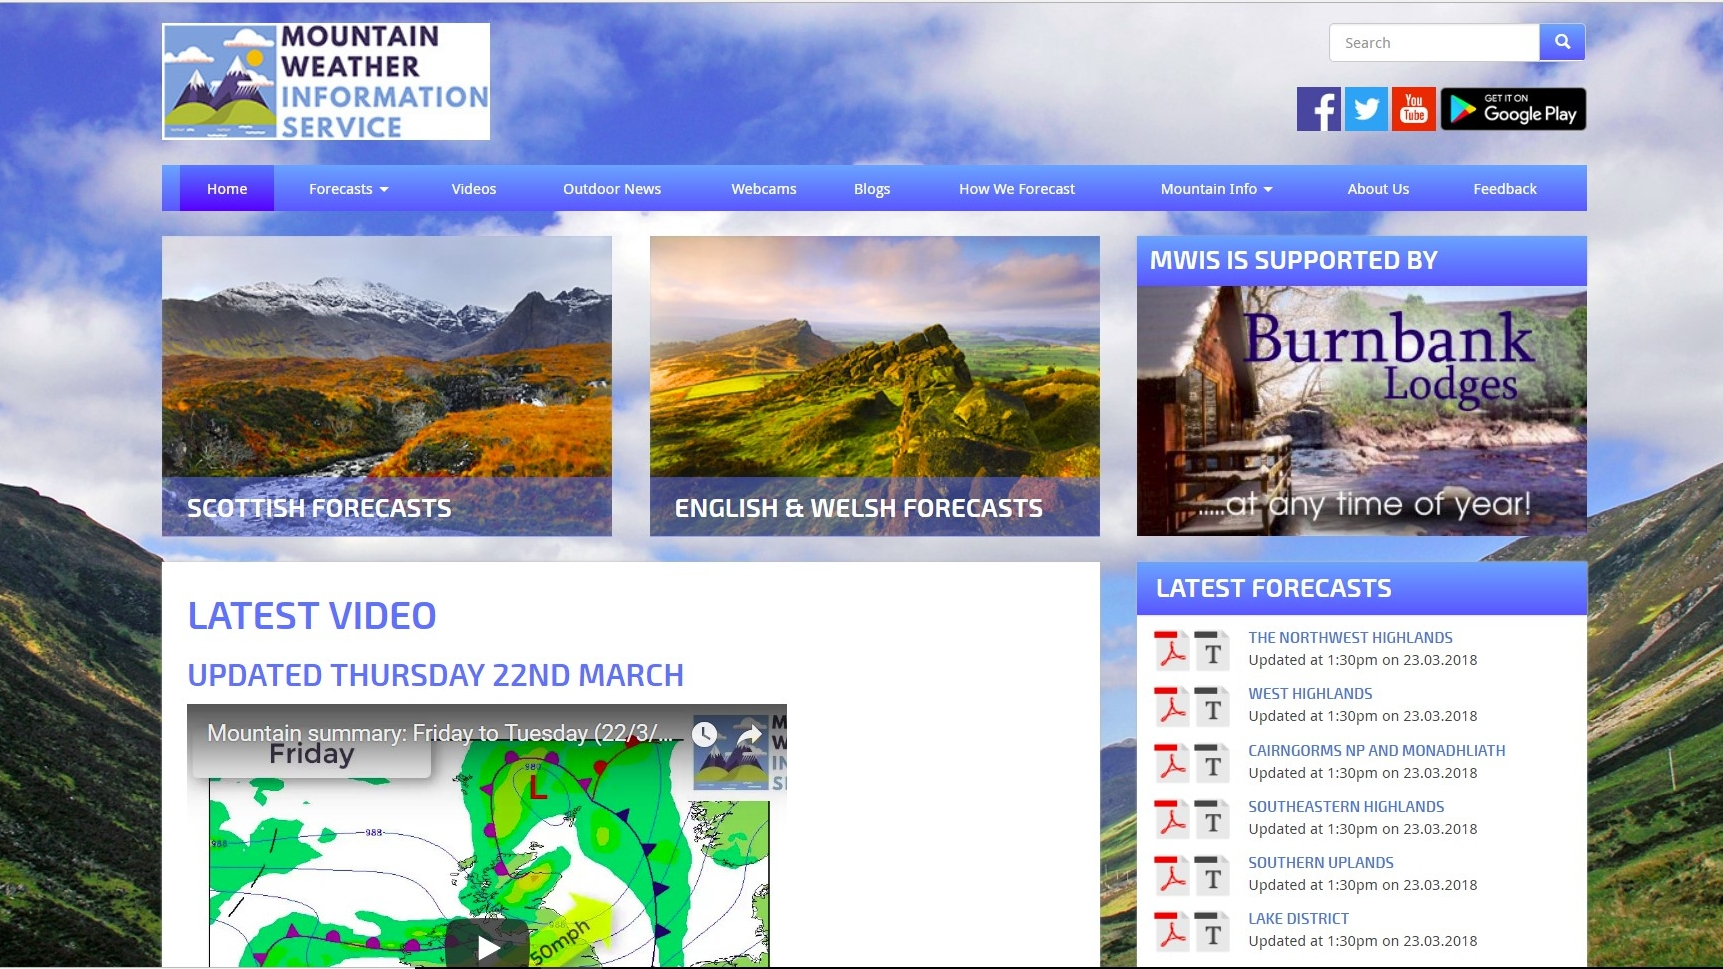 The Mountain Weather Information Service (MWIS) a fantastic resource.